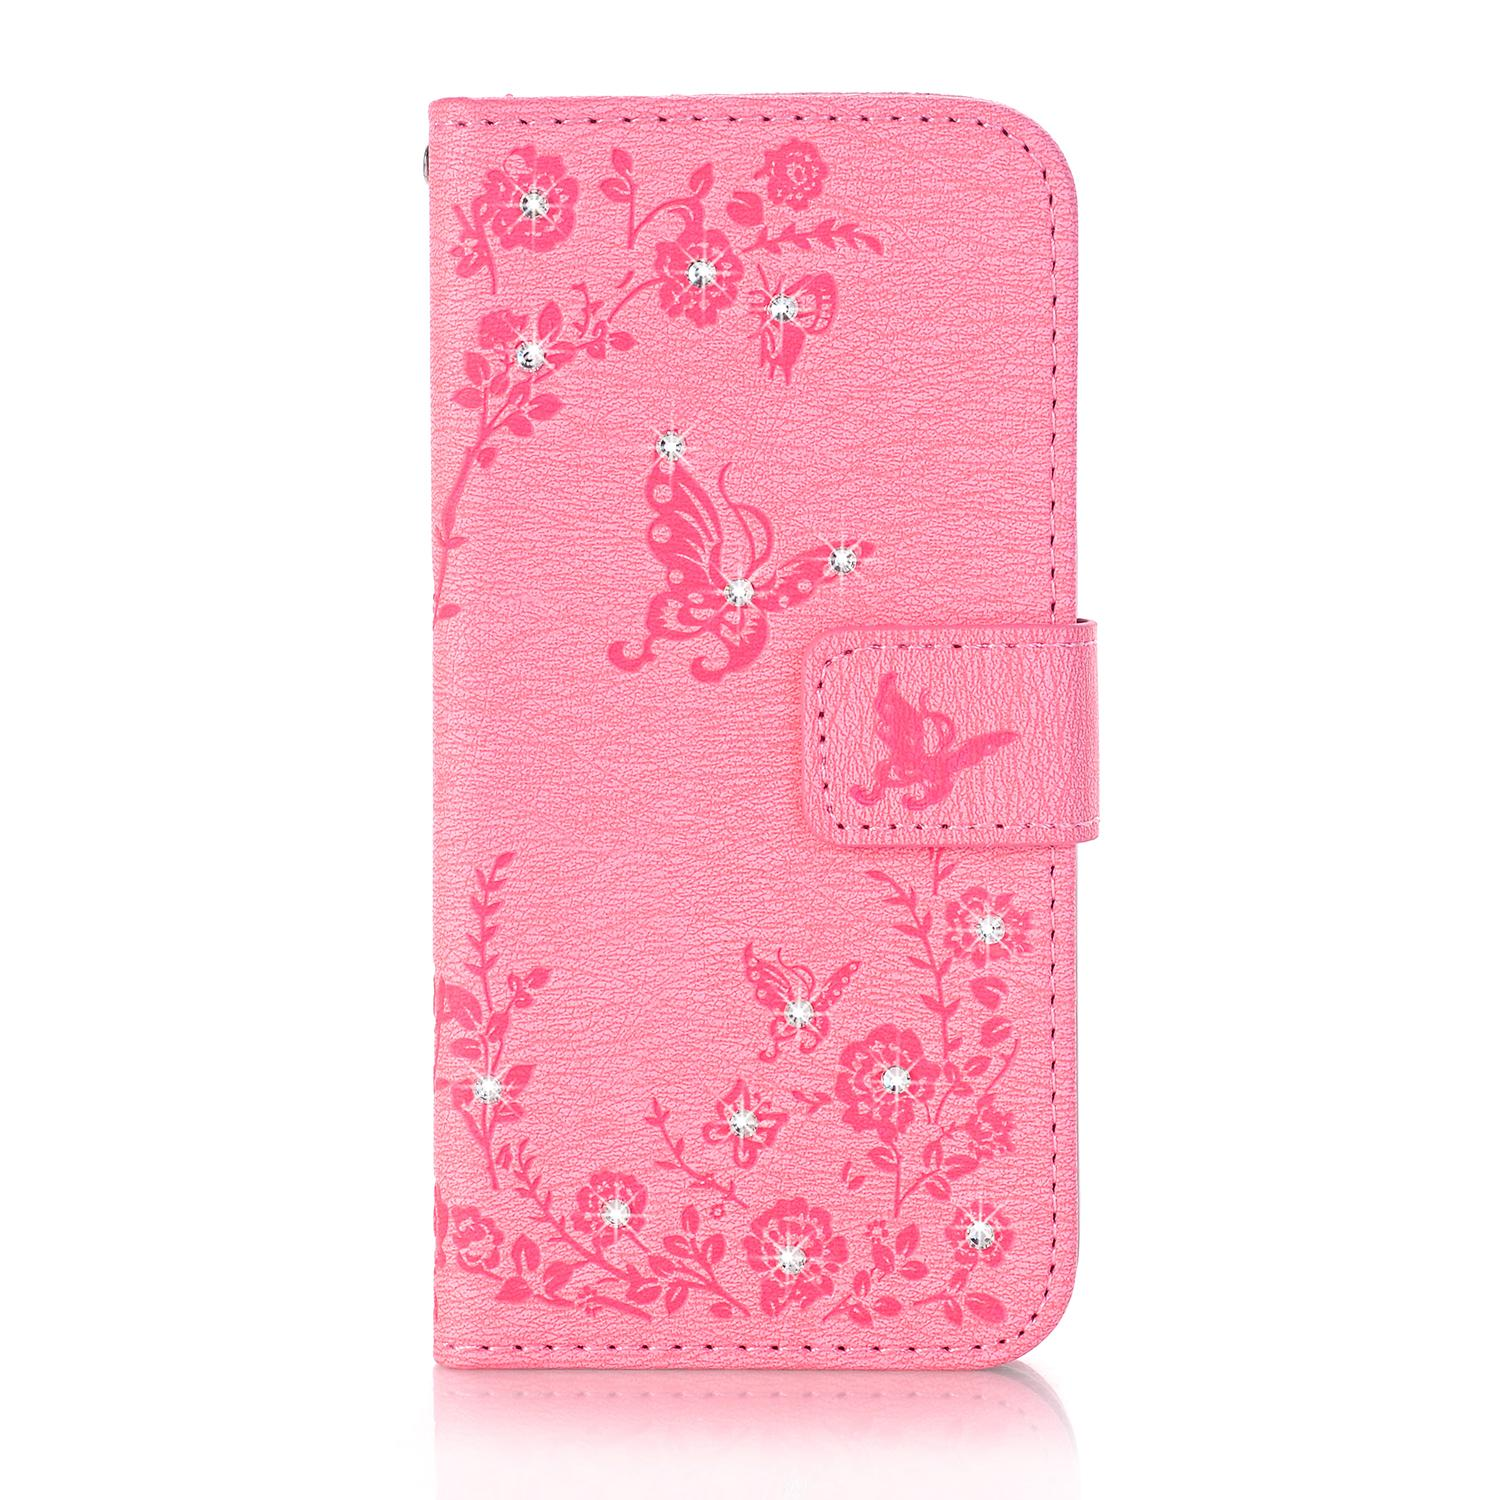 Leather Case Colourful Cover Card Slot Smartphone Cover with Butterfly Pattern For Iphone 5S 6S/6S plus/7 Plus/8 Iphone X